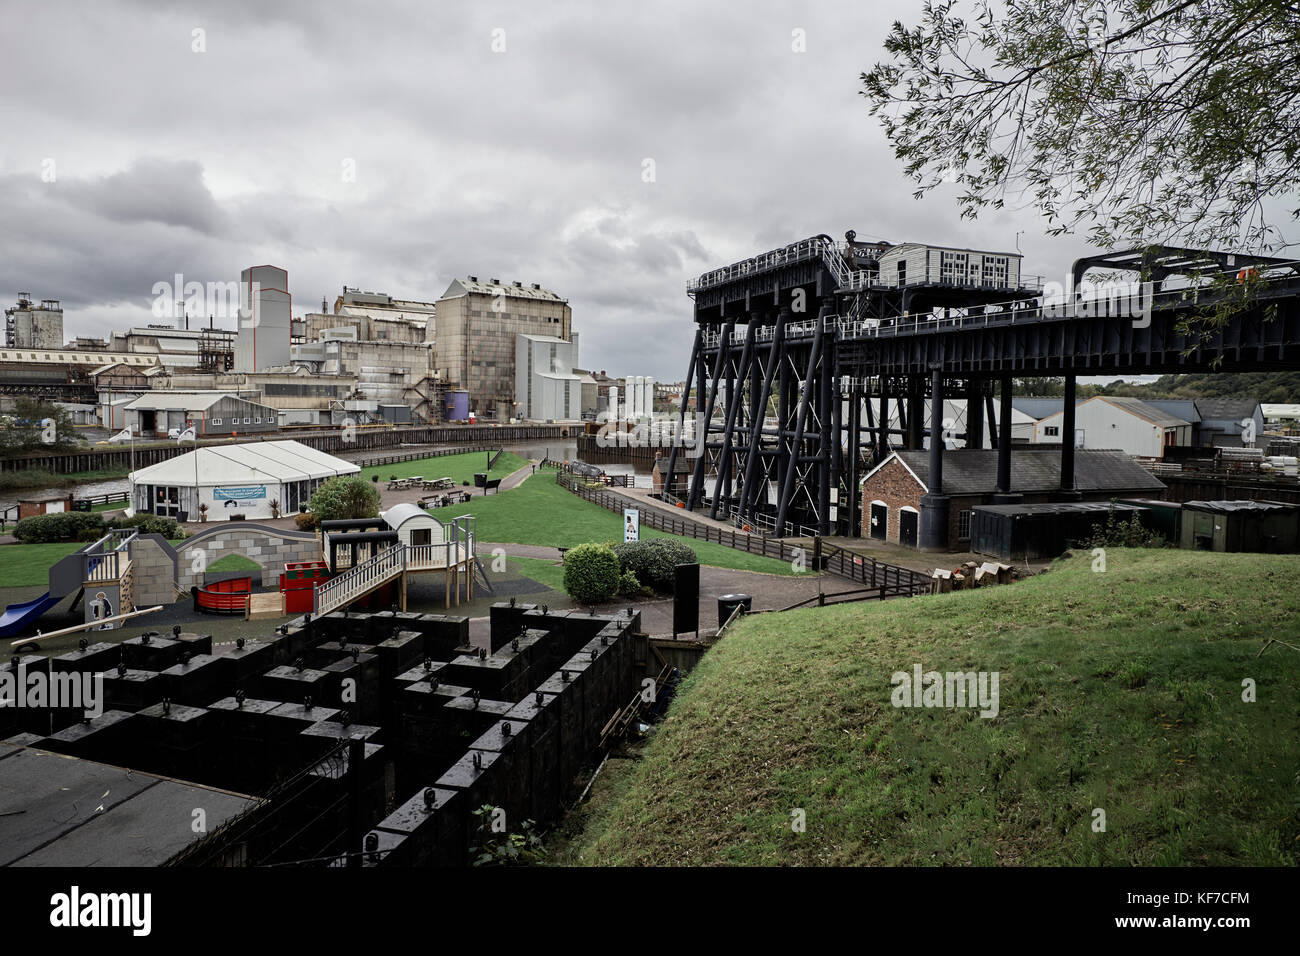 The Anderton boat lift and museum - Stock Image